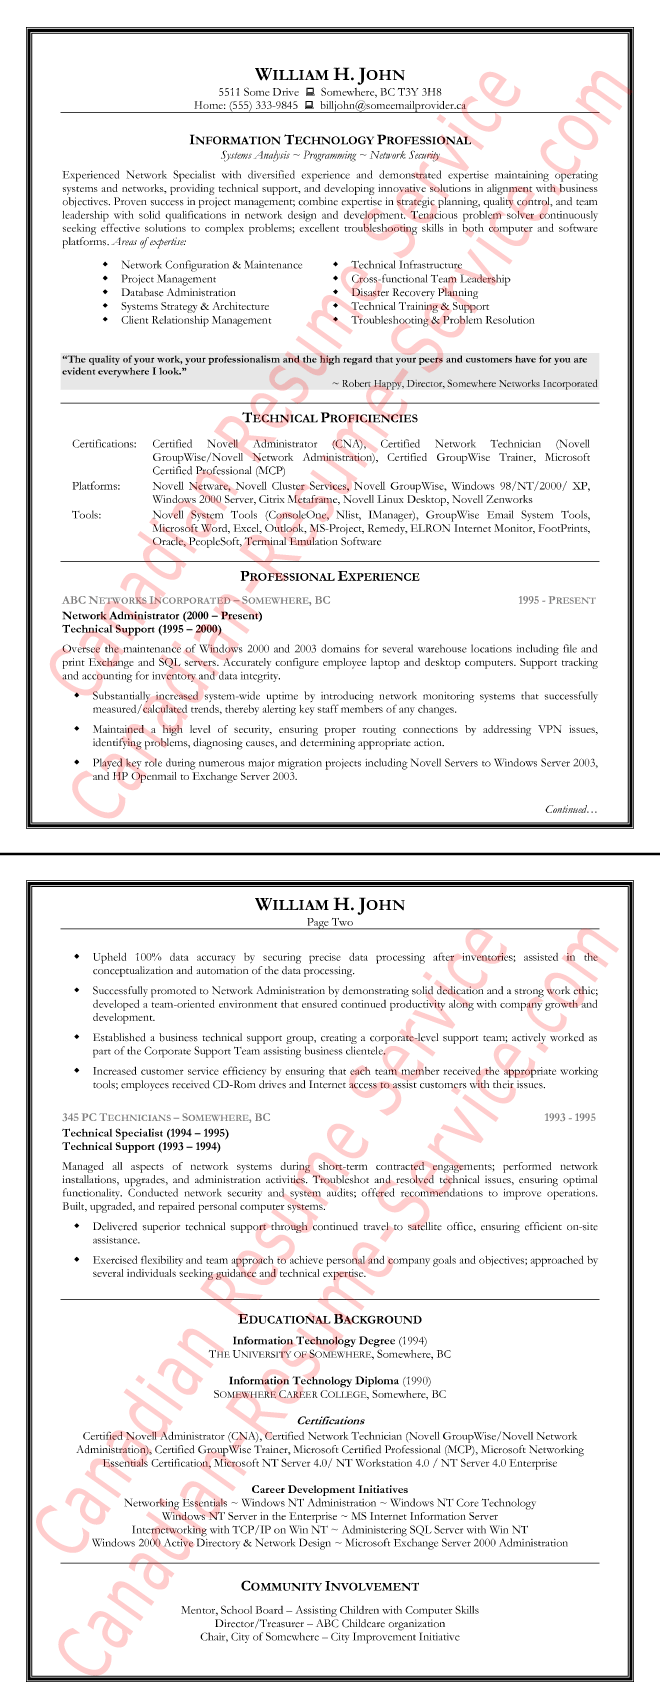 Canadian Resume Writing Service  Information Technology Resume